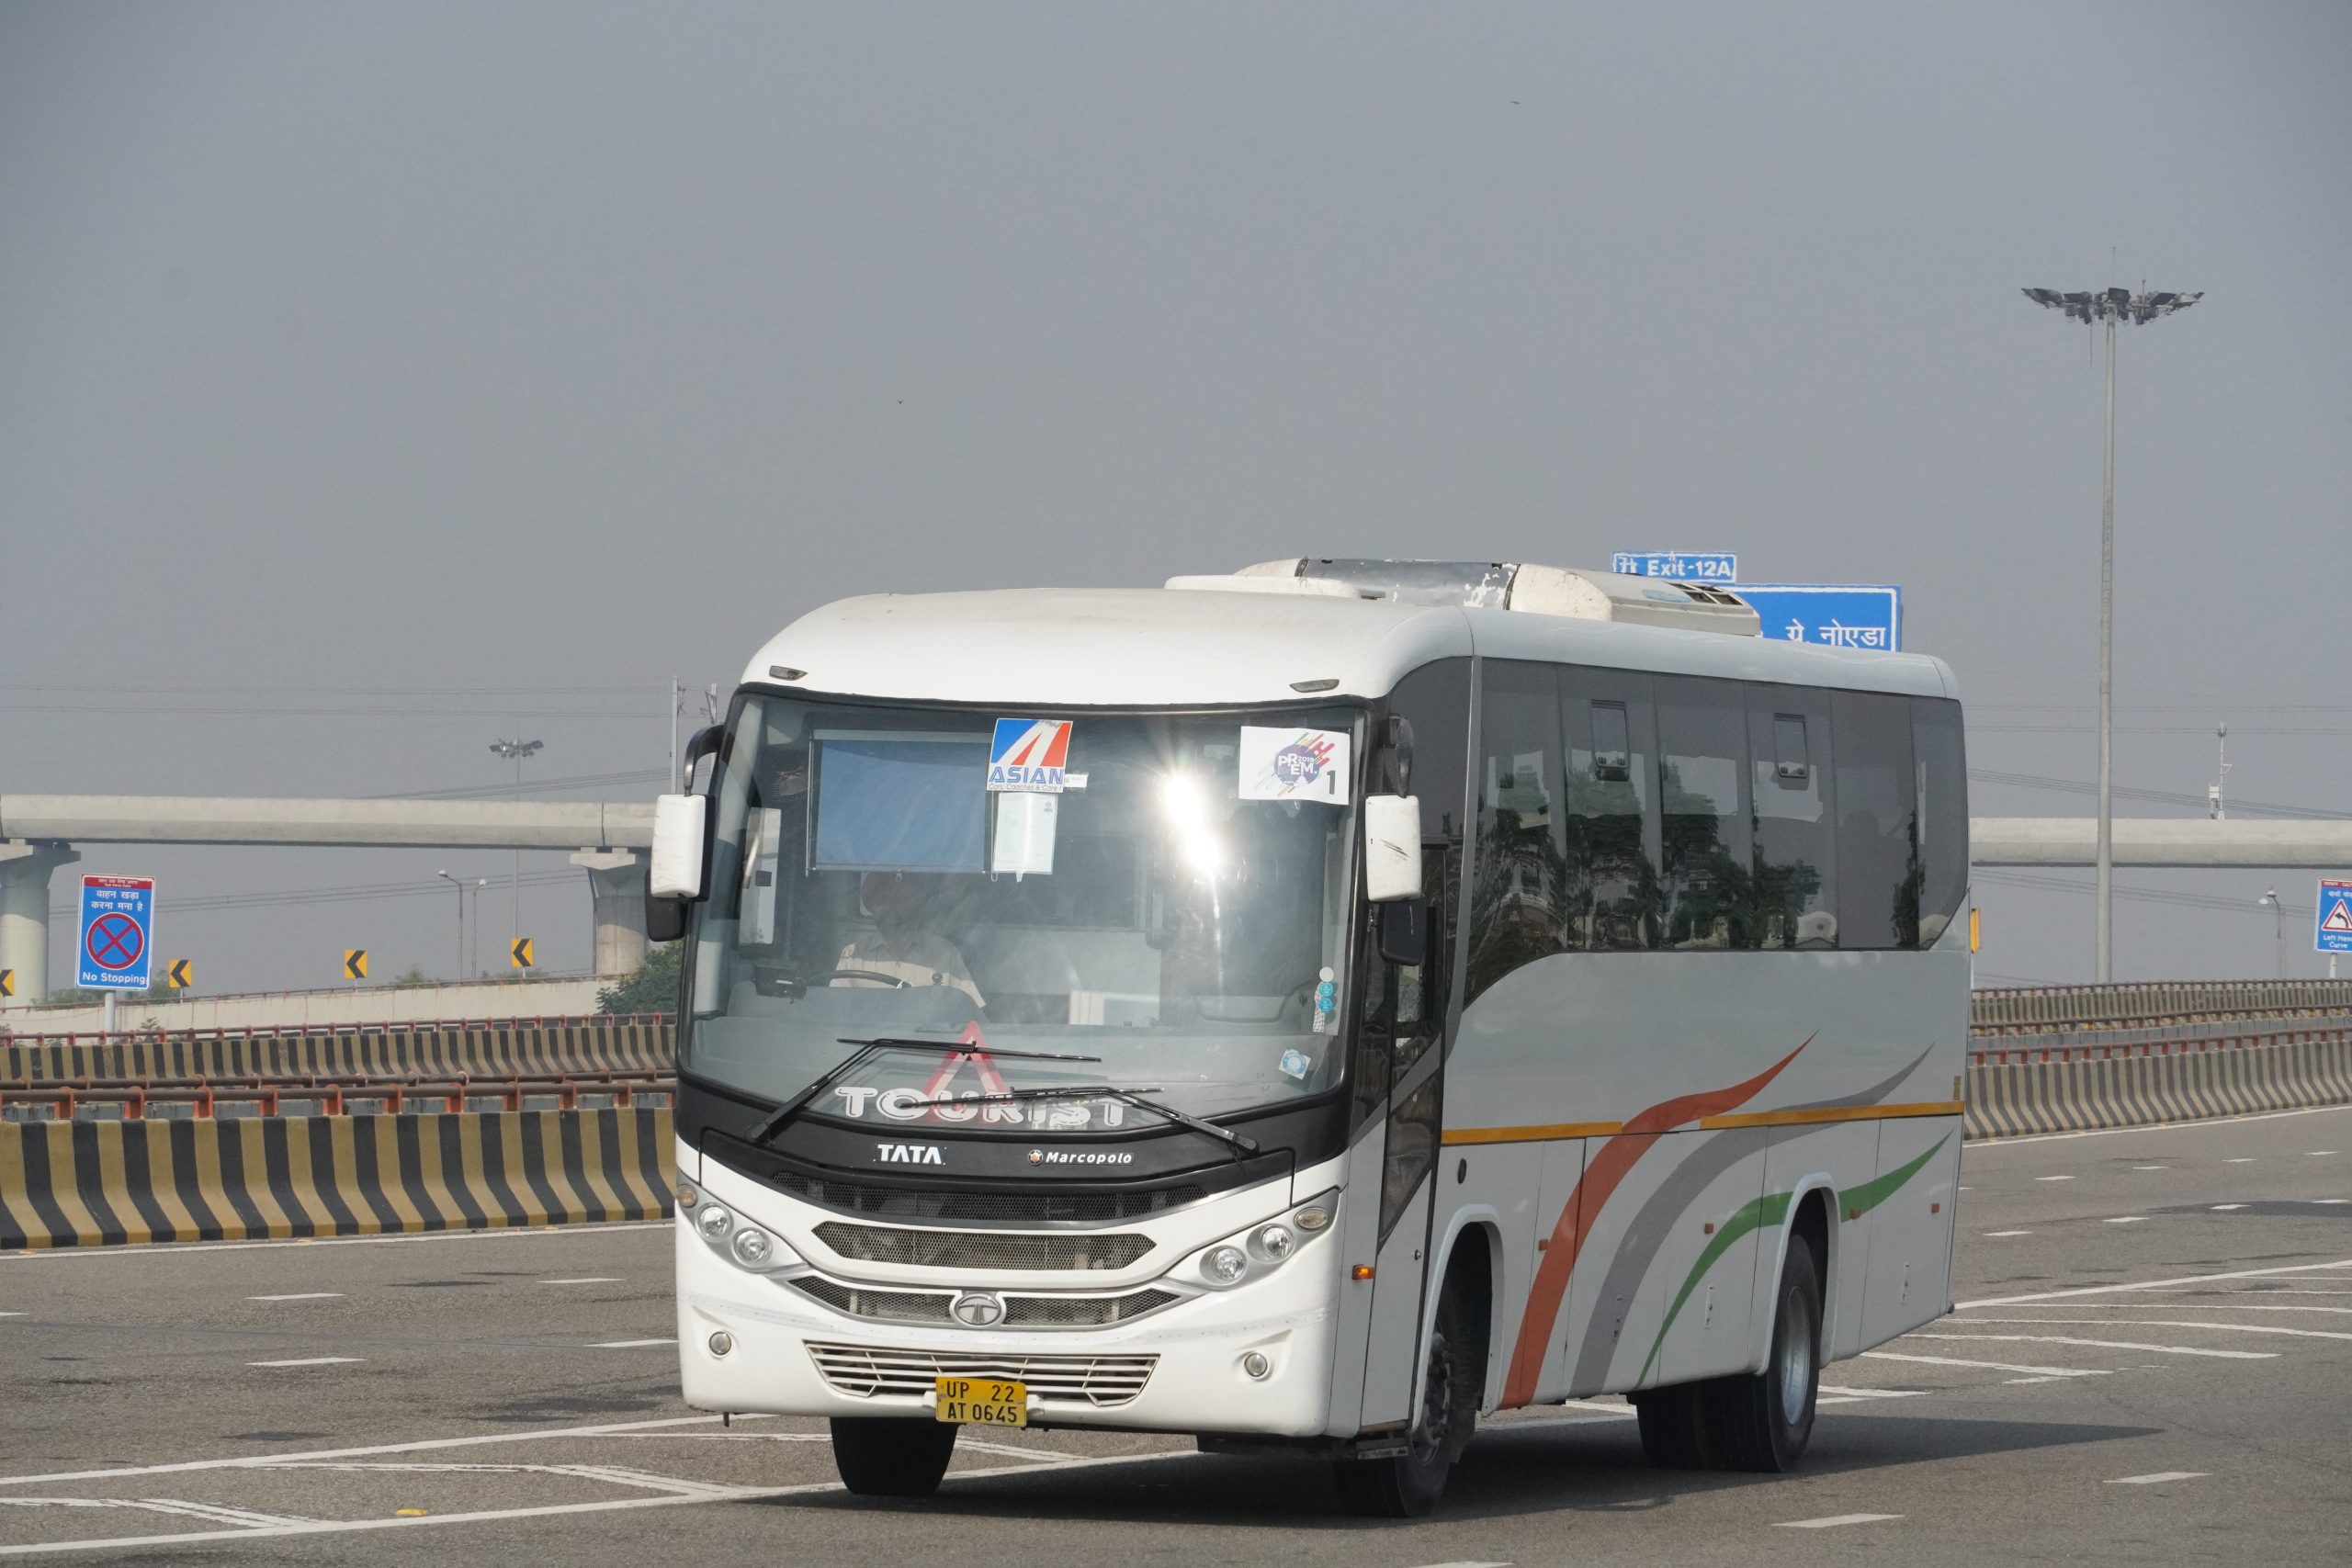 bus on a road